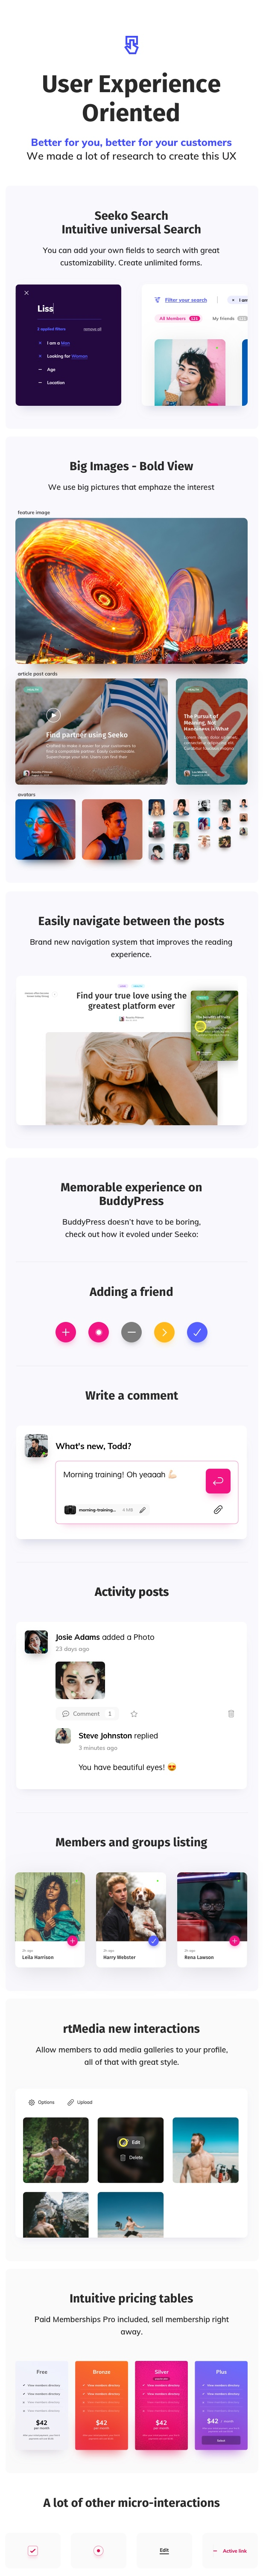 Seeko - Community Site Builder with BuddyPress SuperPowers - 10